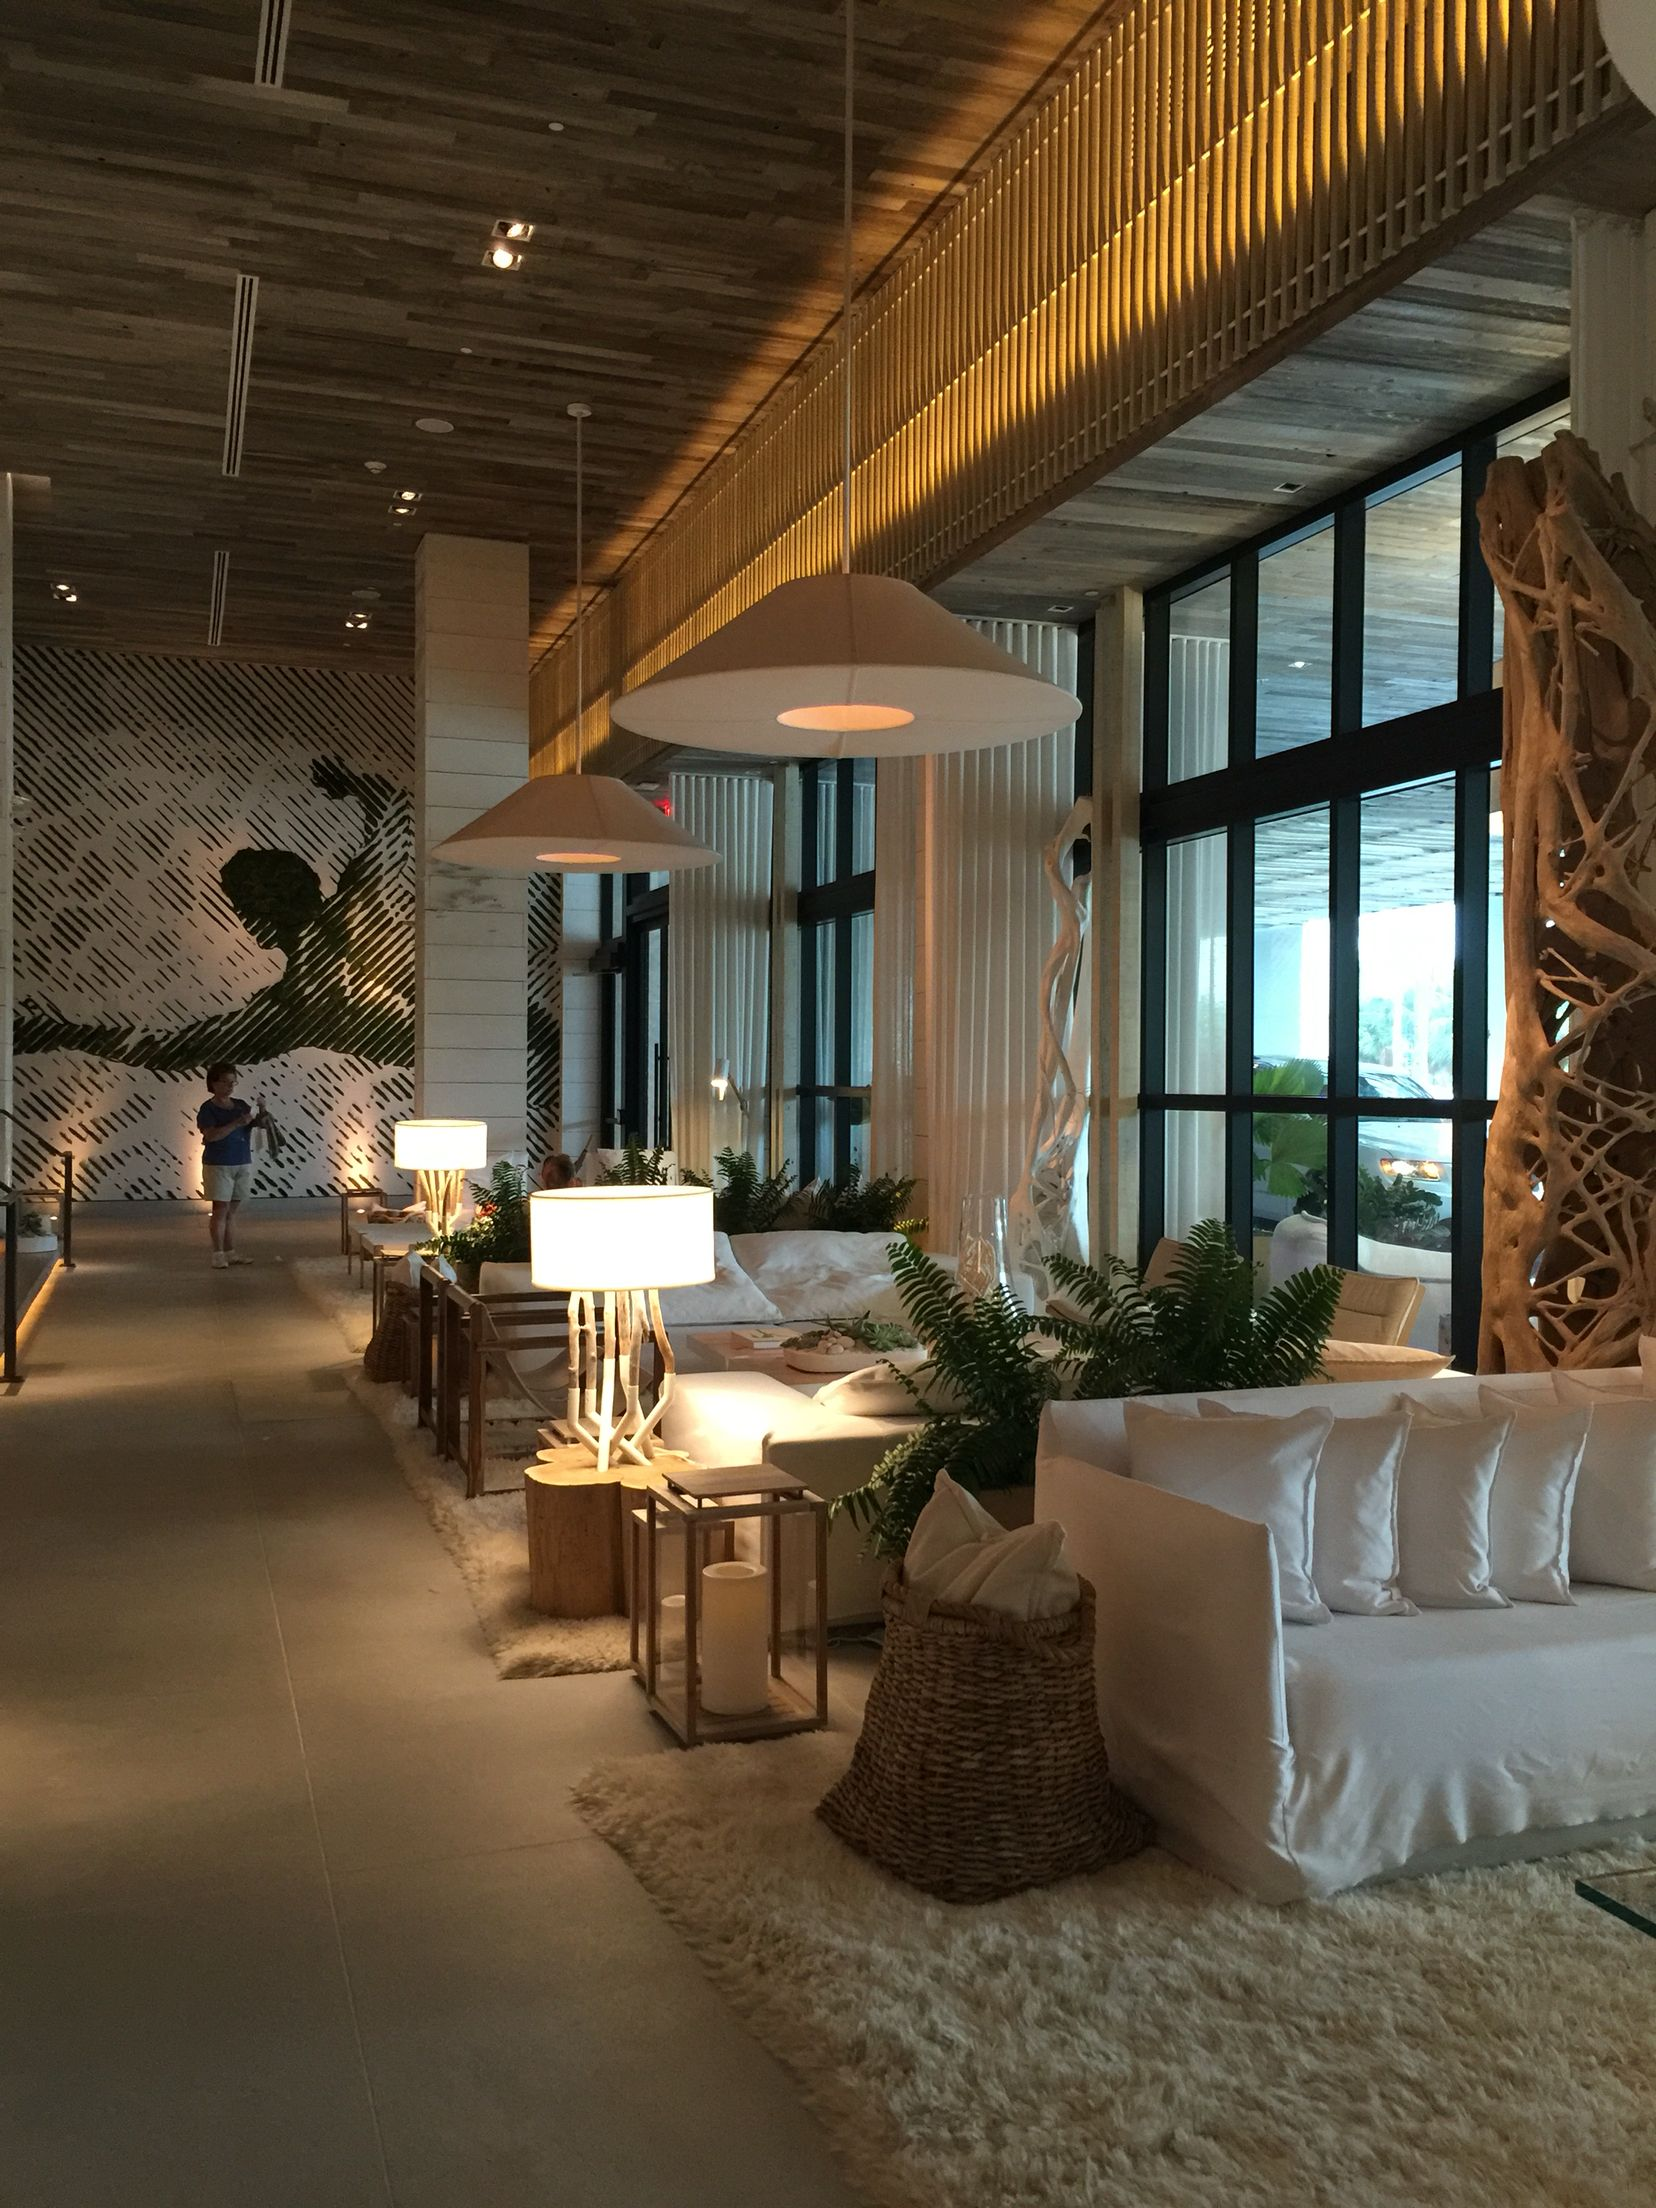 Luxury Interior Designers In Mumbai: 1 South Beach Miami. Lobby Of The Hotel.